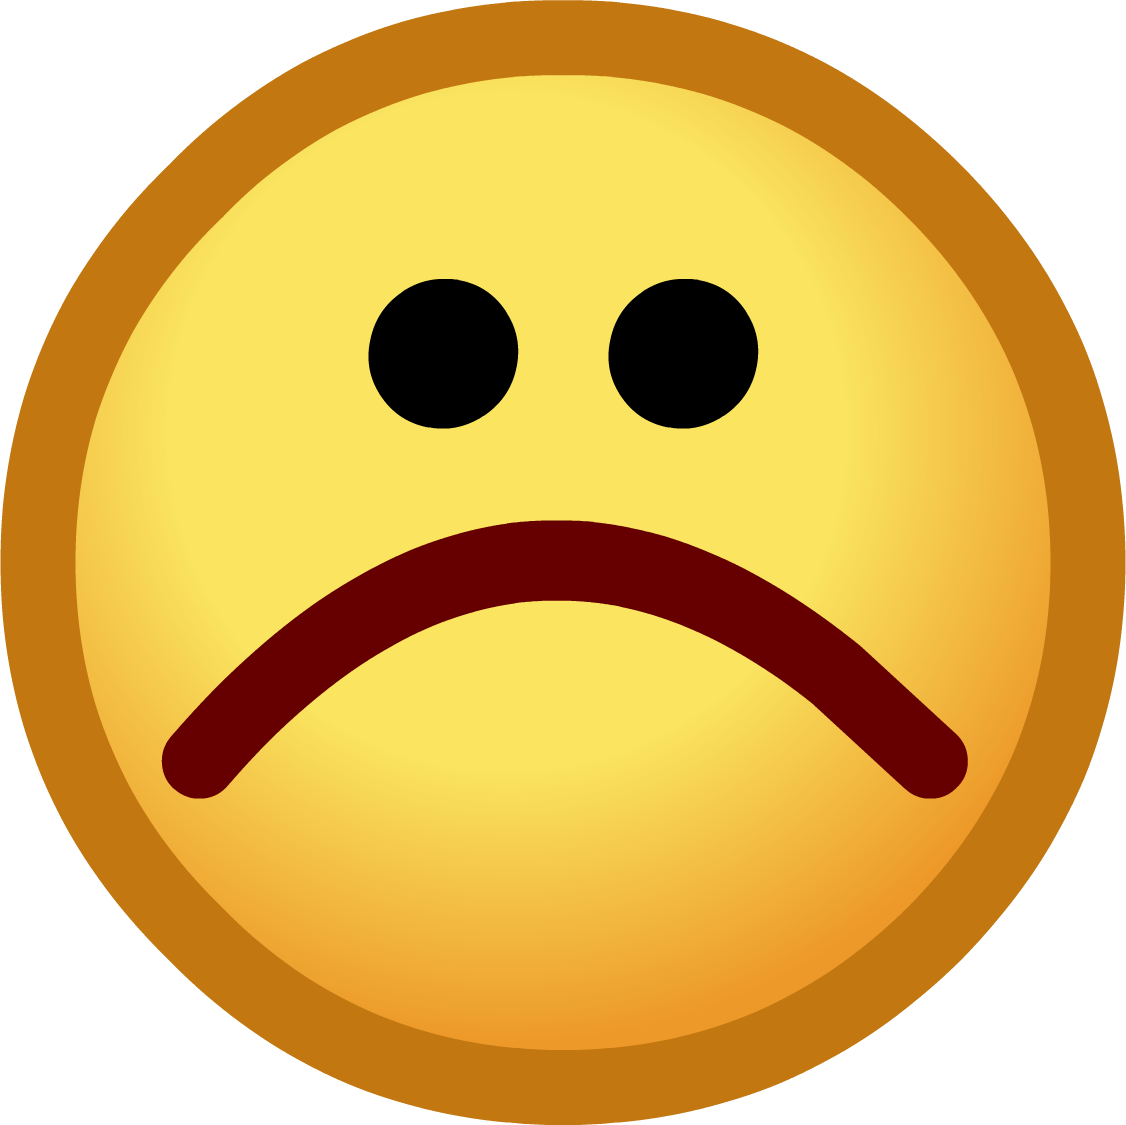 Image - Sad Emoticon.png | Club Penguin Wiki | Fandom powered by Wikia